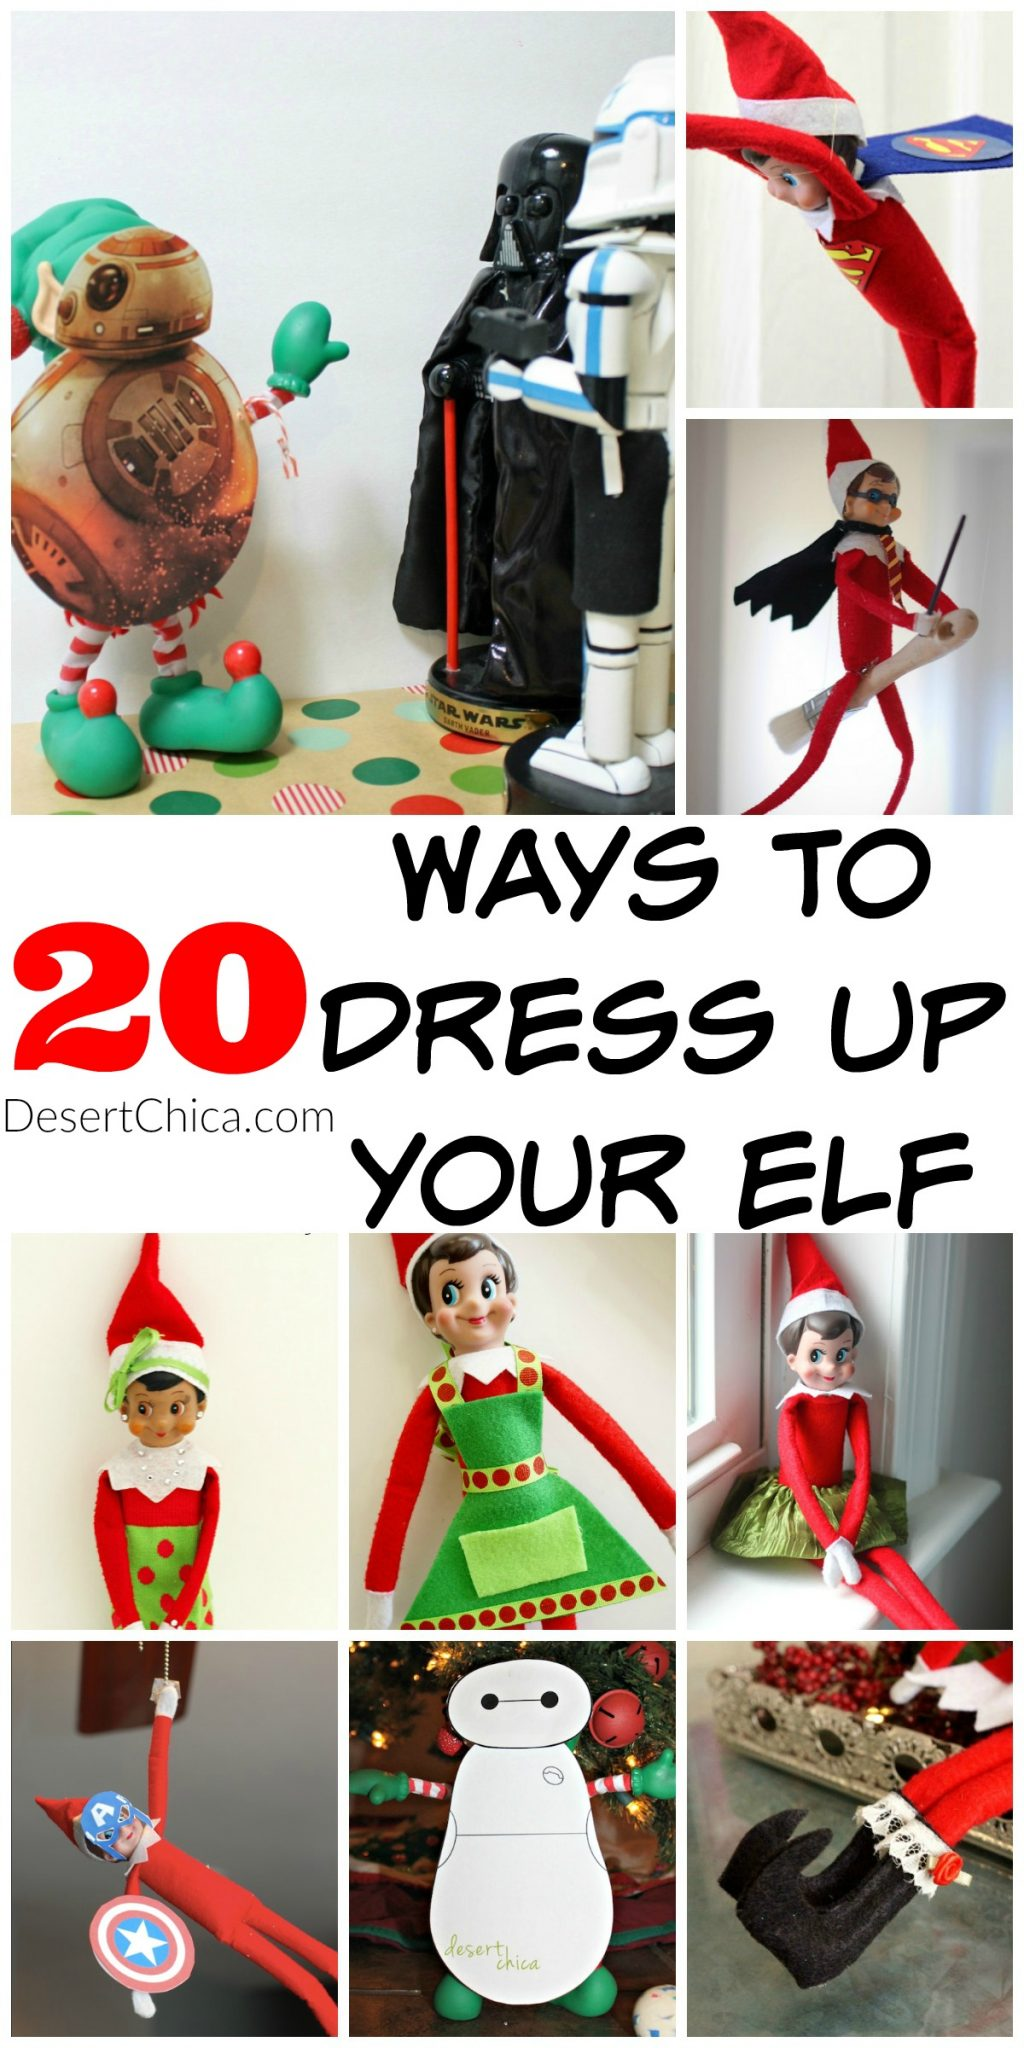 Looking for a way to dress up your elf on the shelf? Check out these 20+ Elf on the shelf costume ideas!